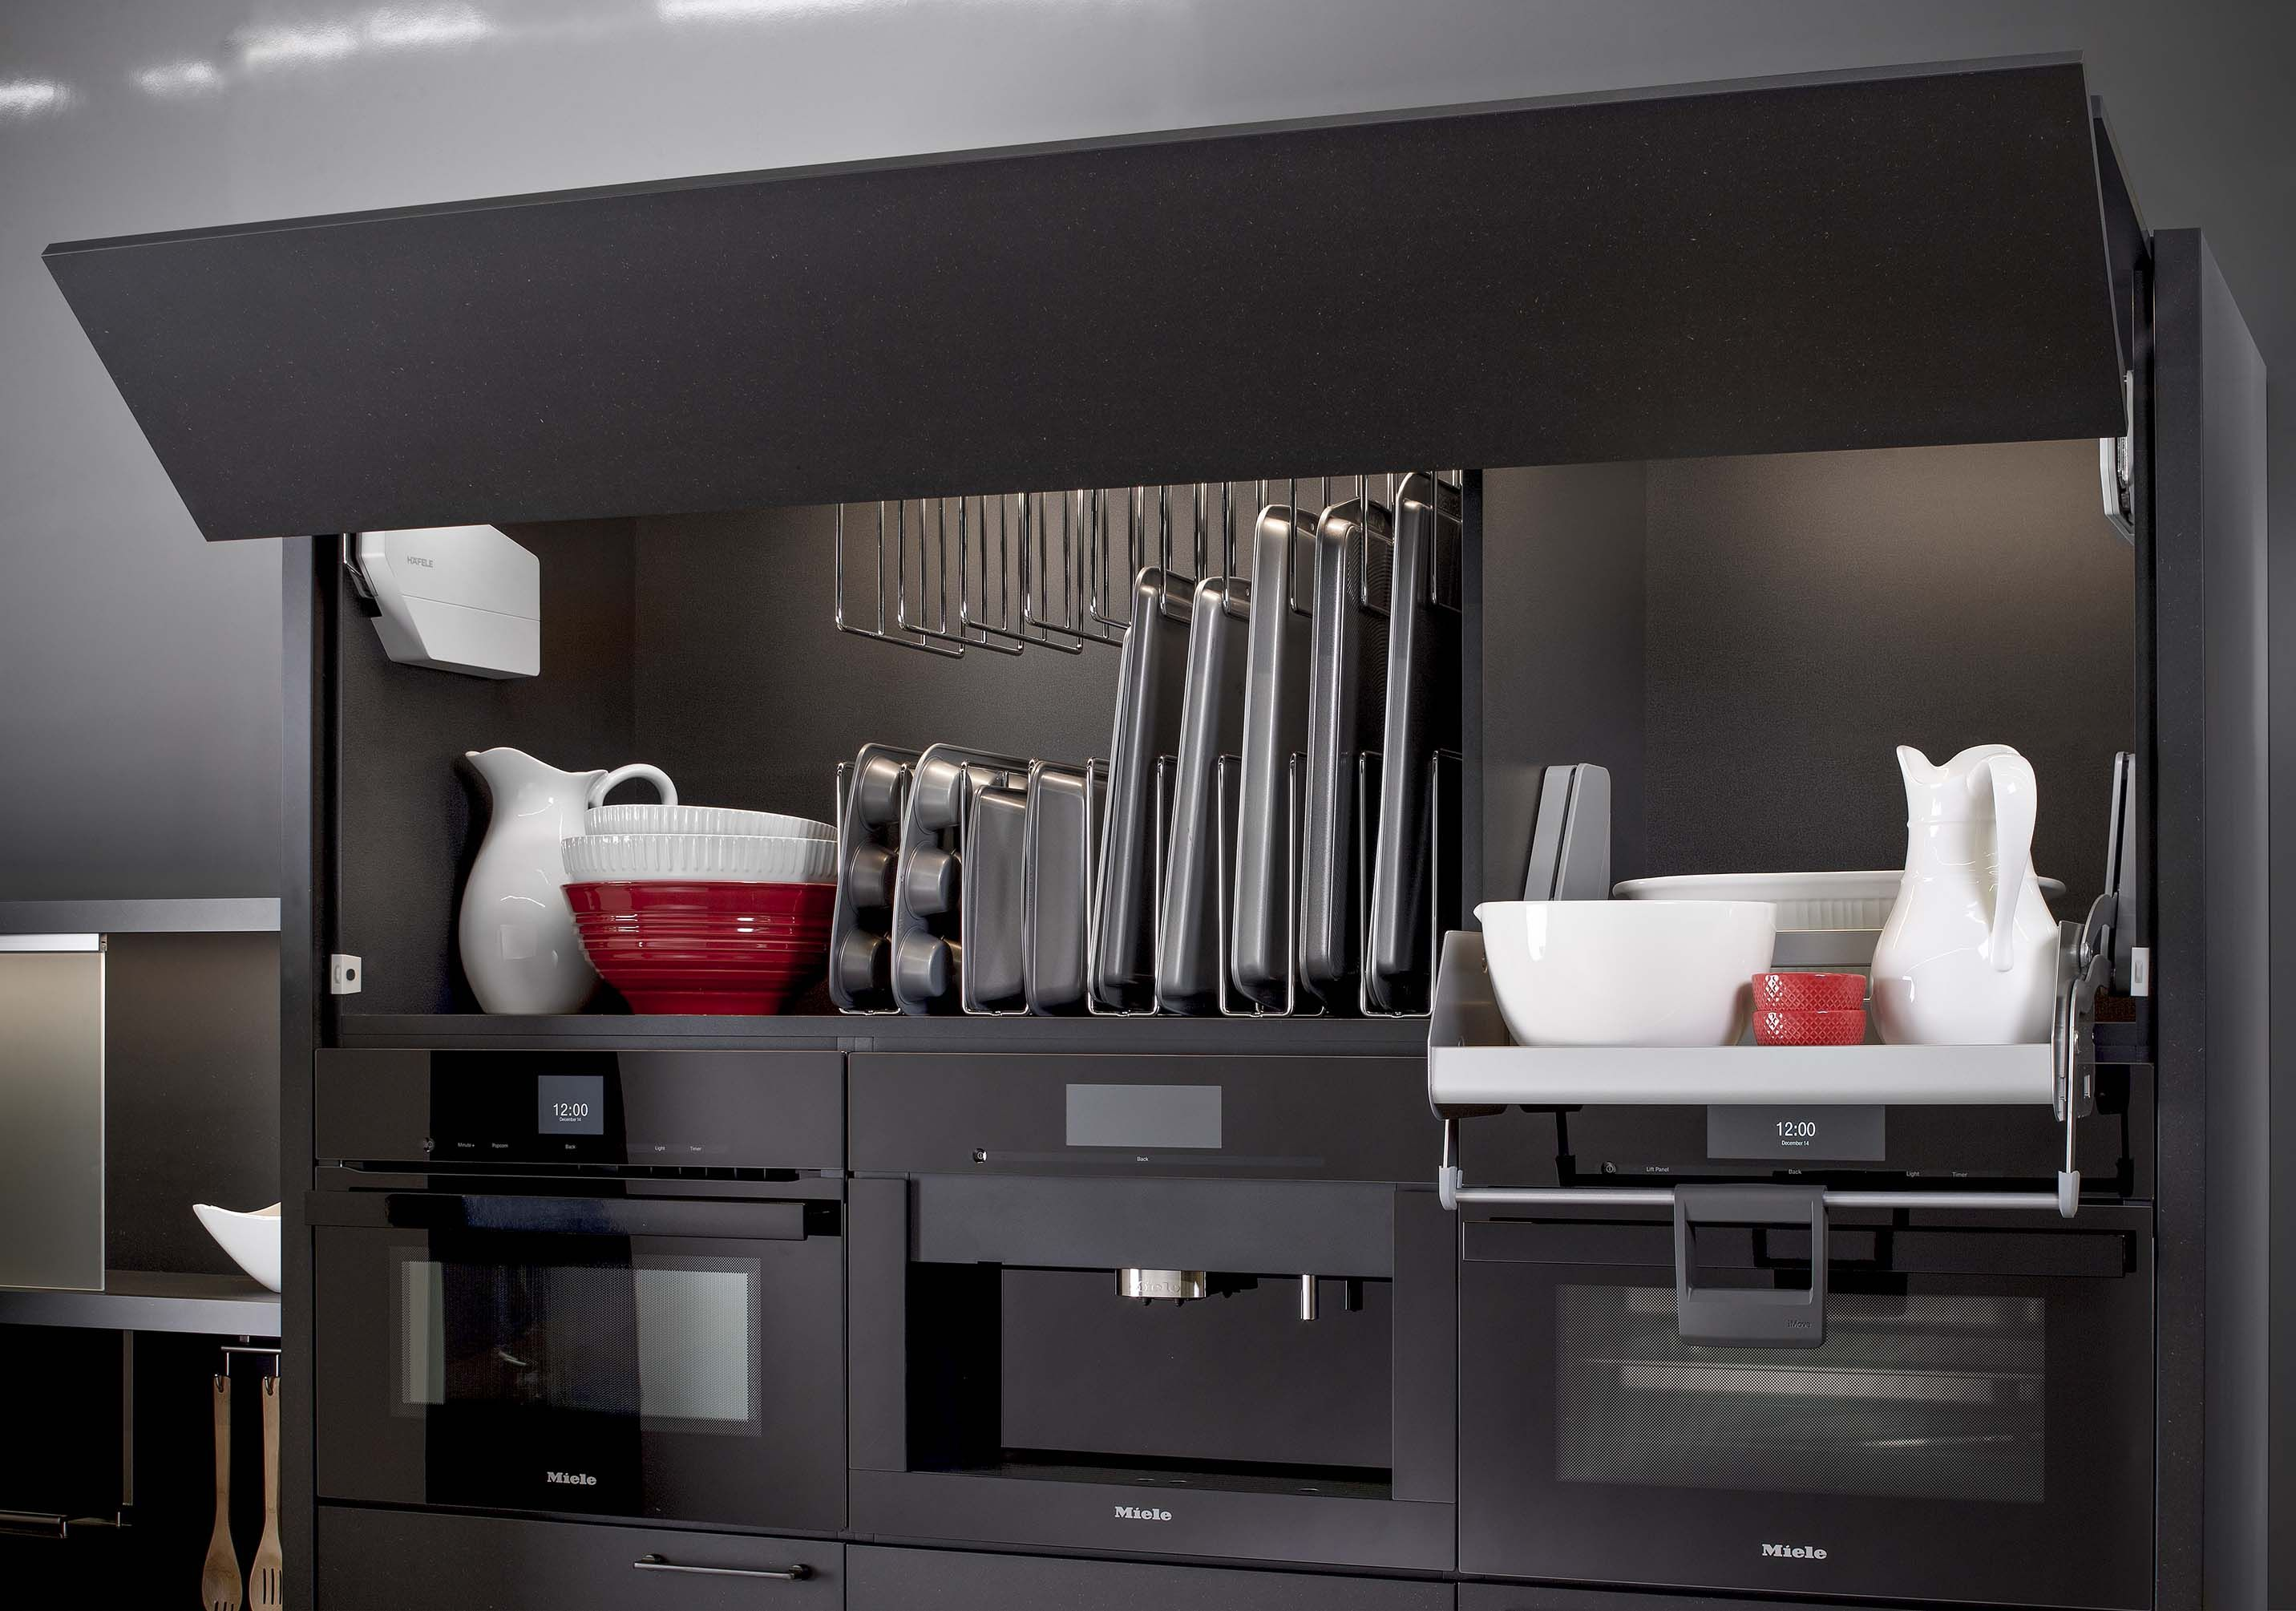 Interior Fittings For Kitchen Cupboards Hafele Lift Up Fittings Kitchen Ideas Pinterest